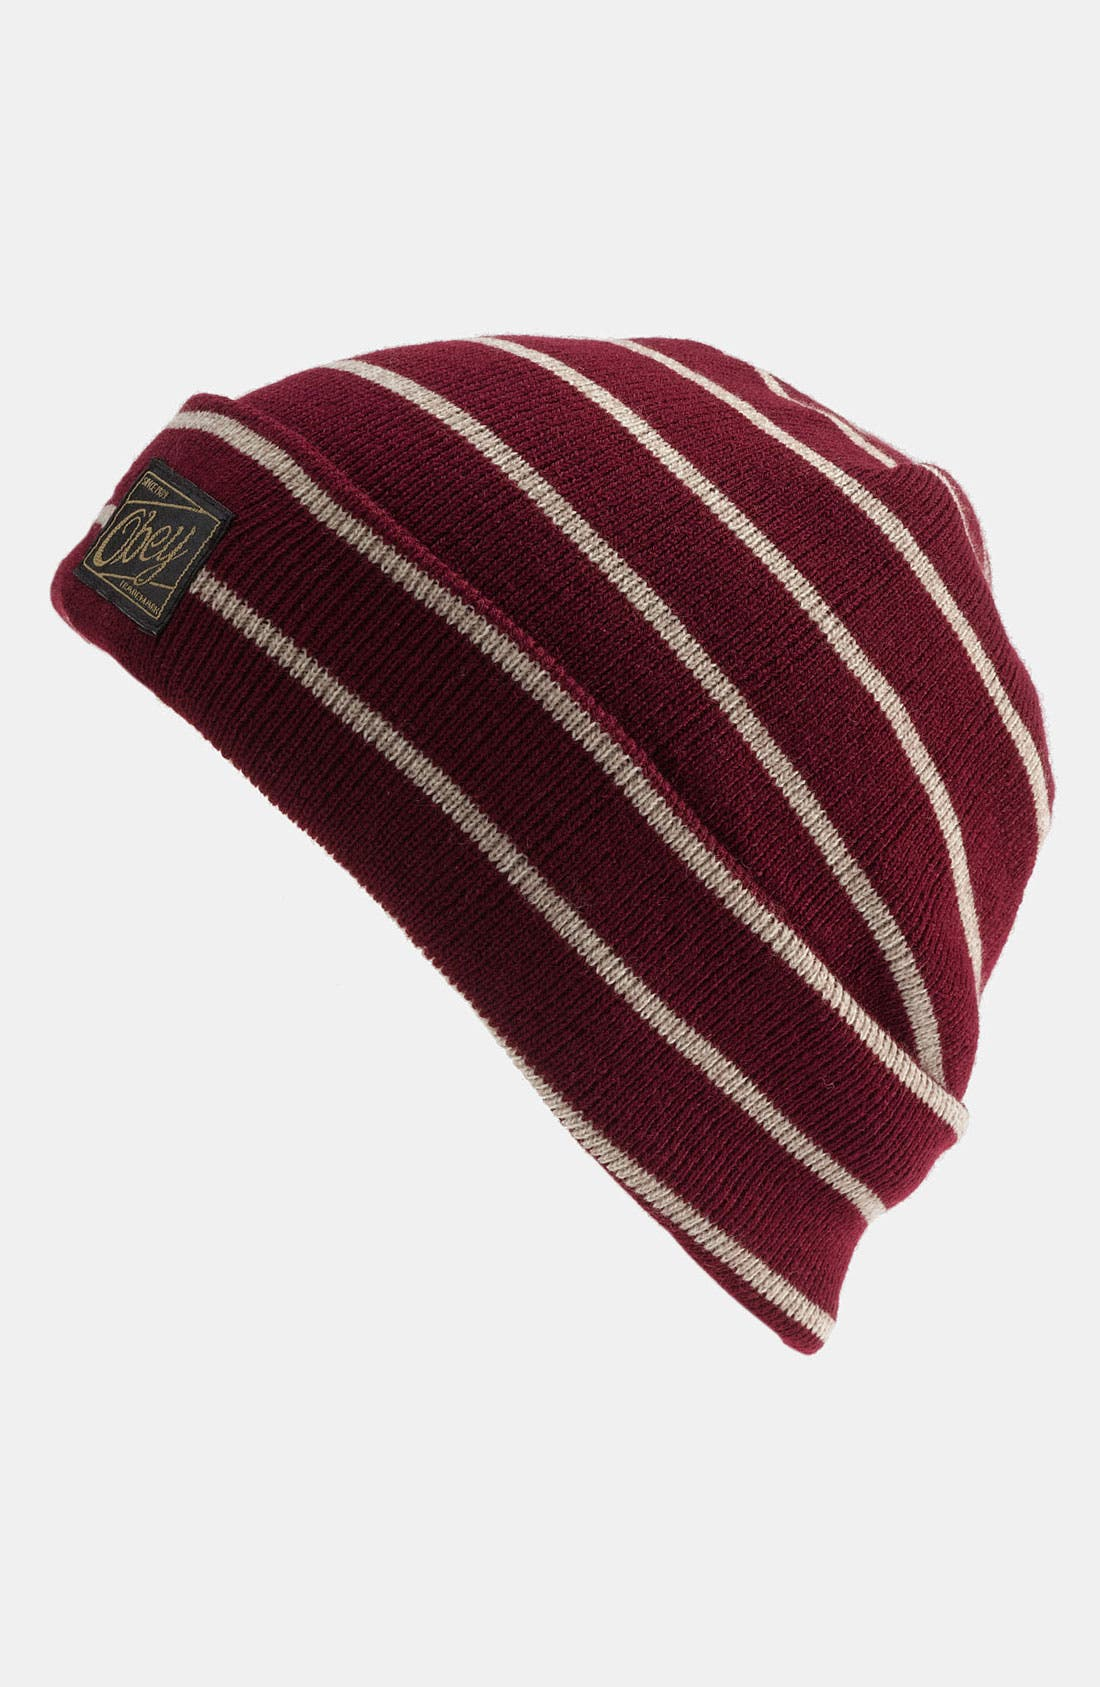 Alternate Image 1 Selected - Obey 'Jobber' Knit Cap